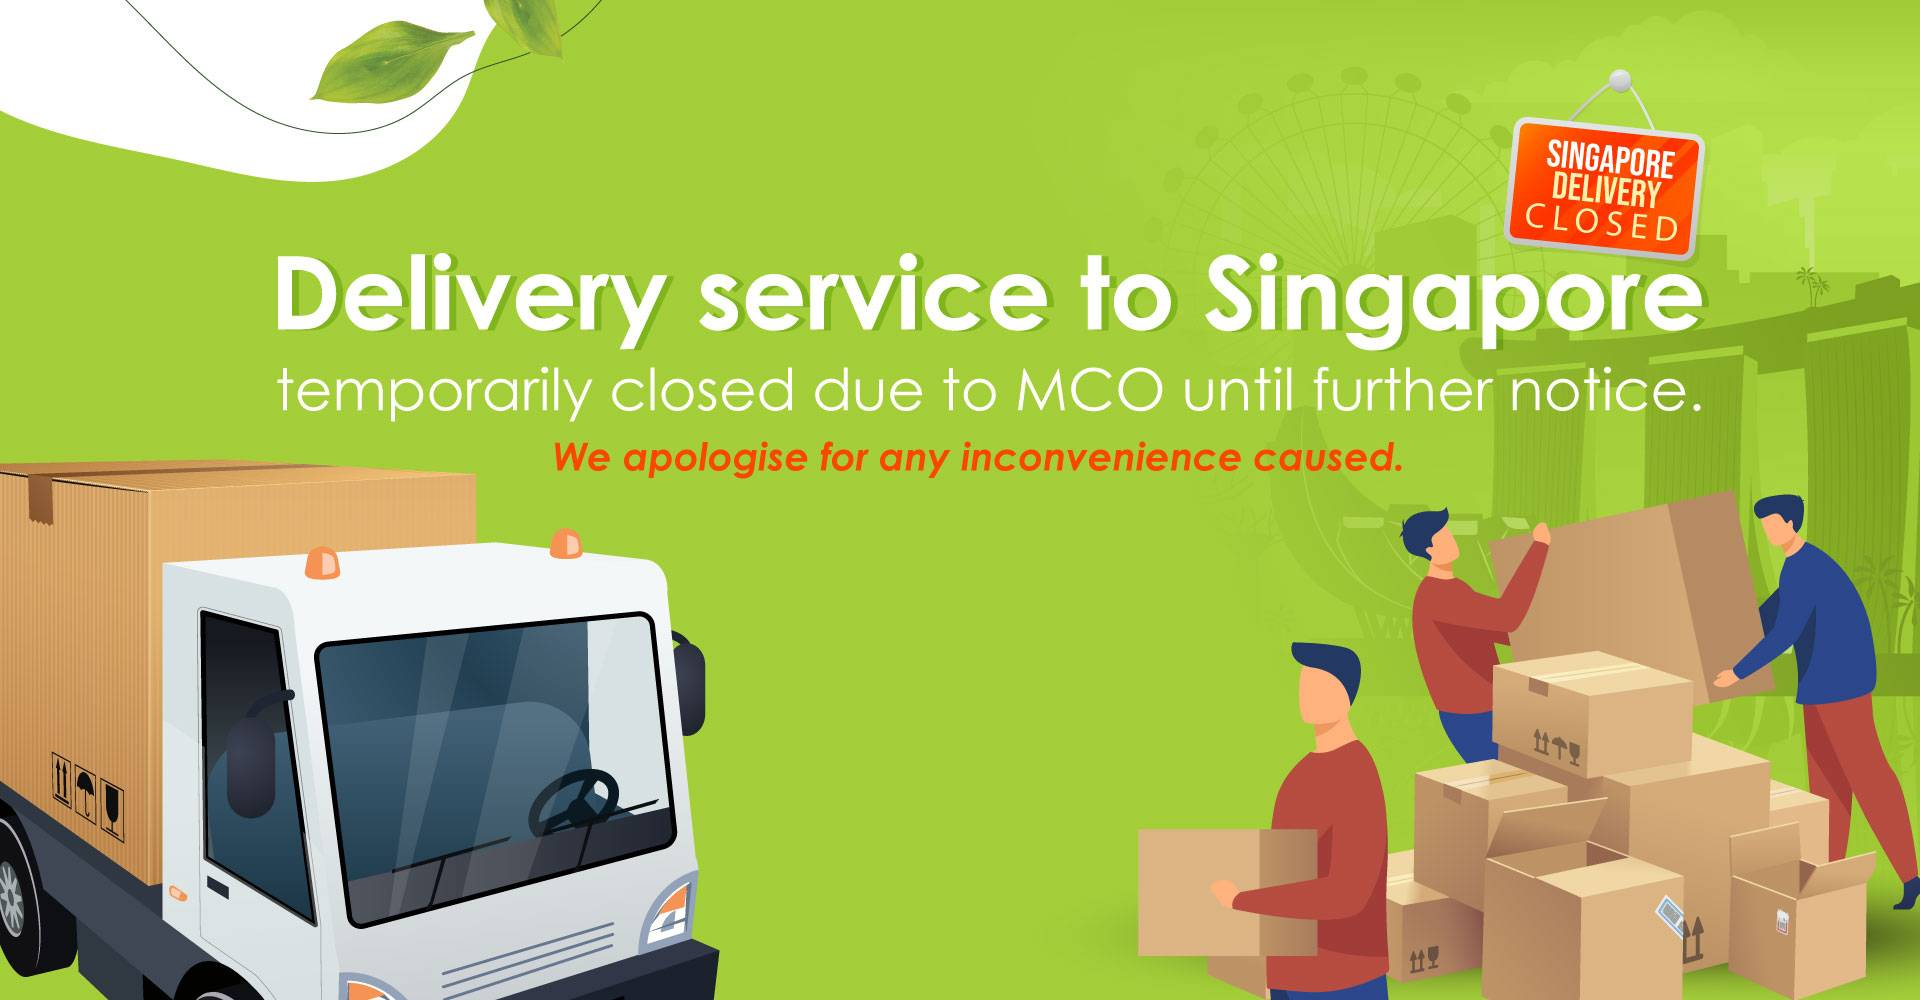 Singapore Delivery Temporarily Closed.